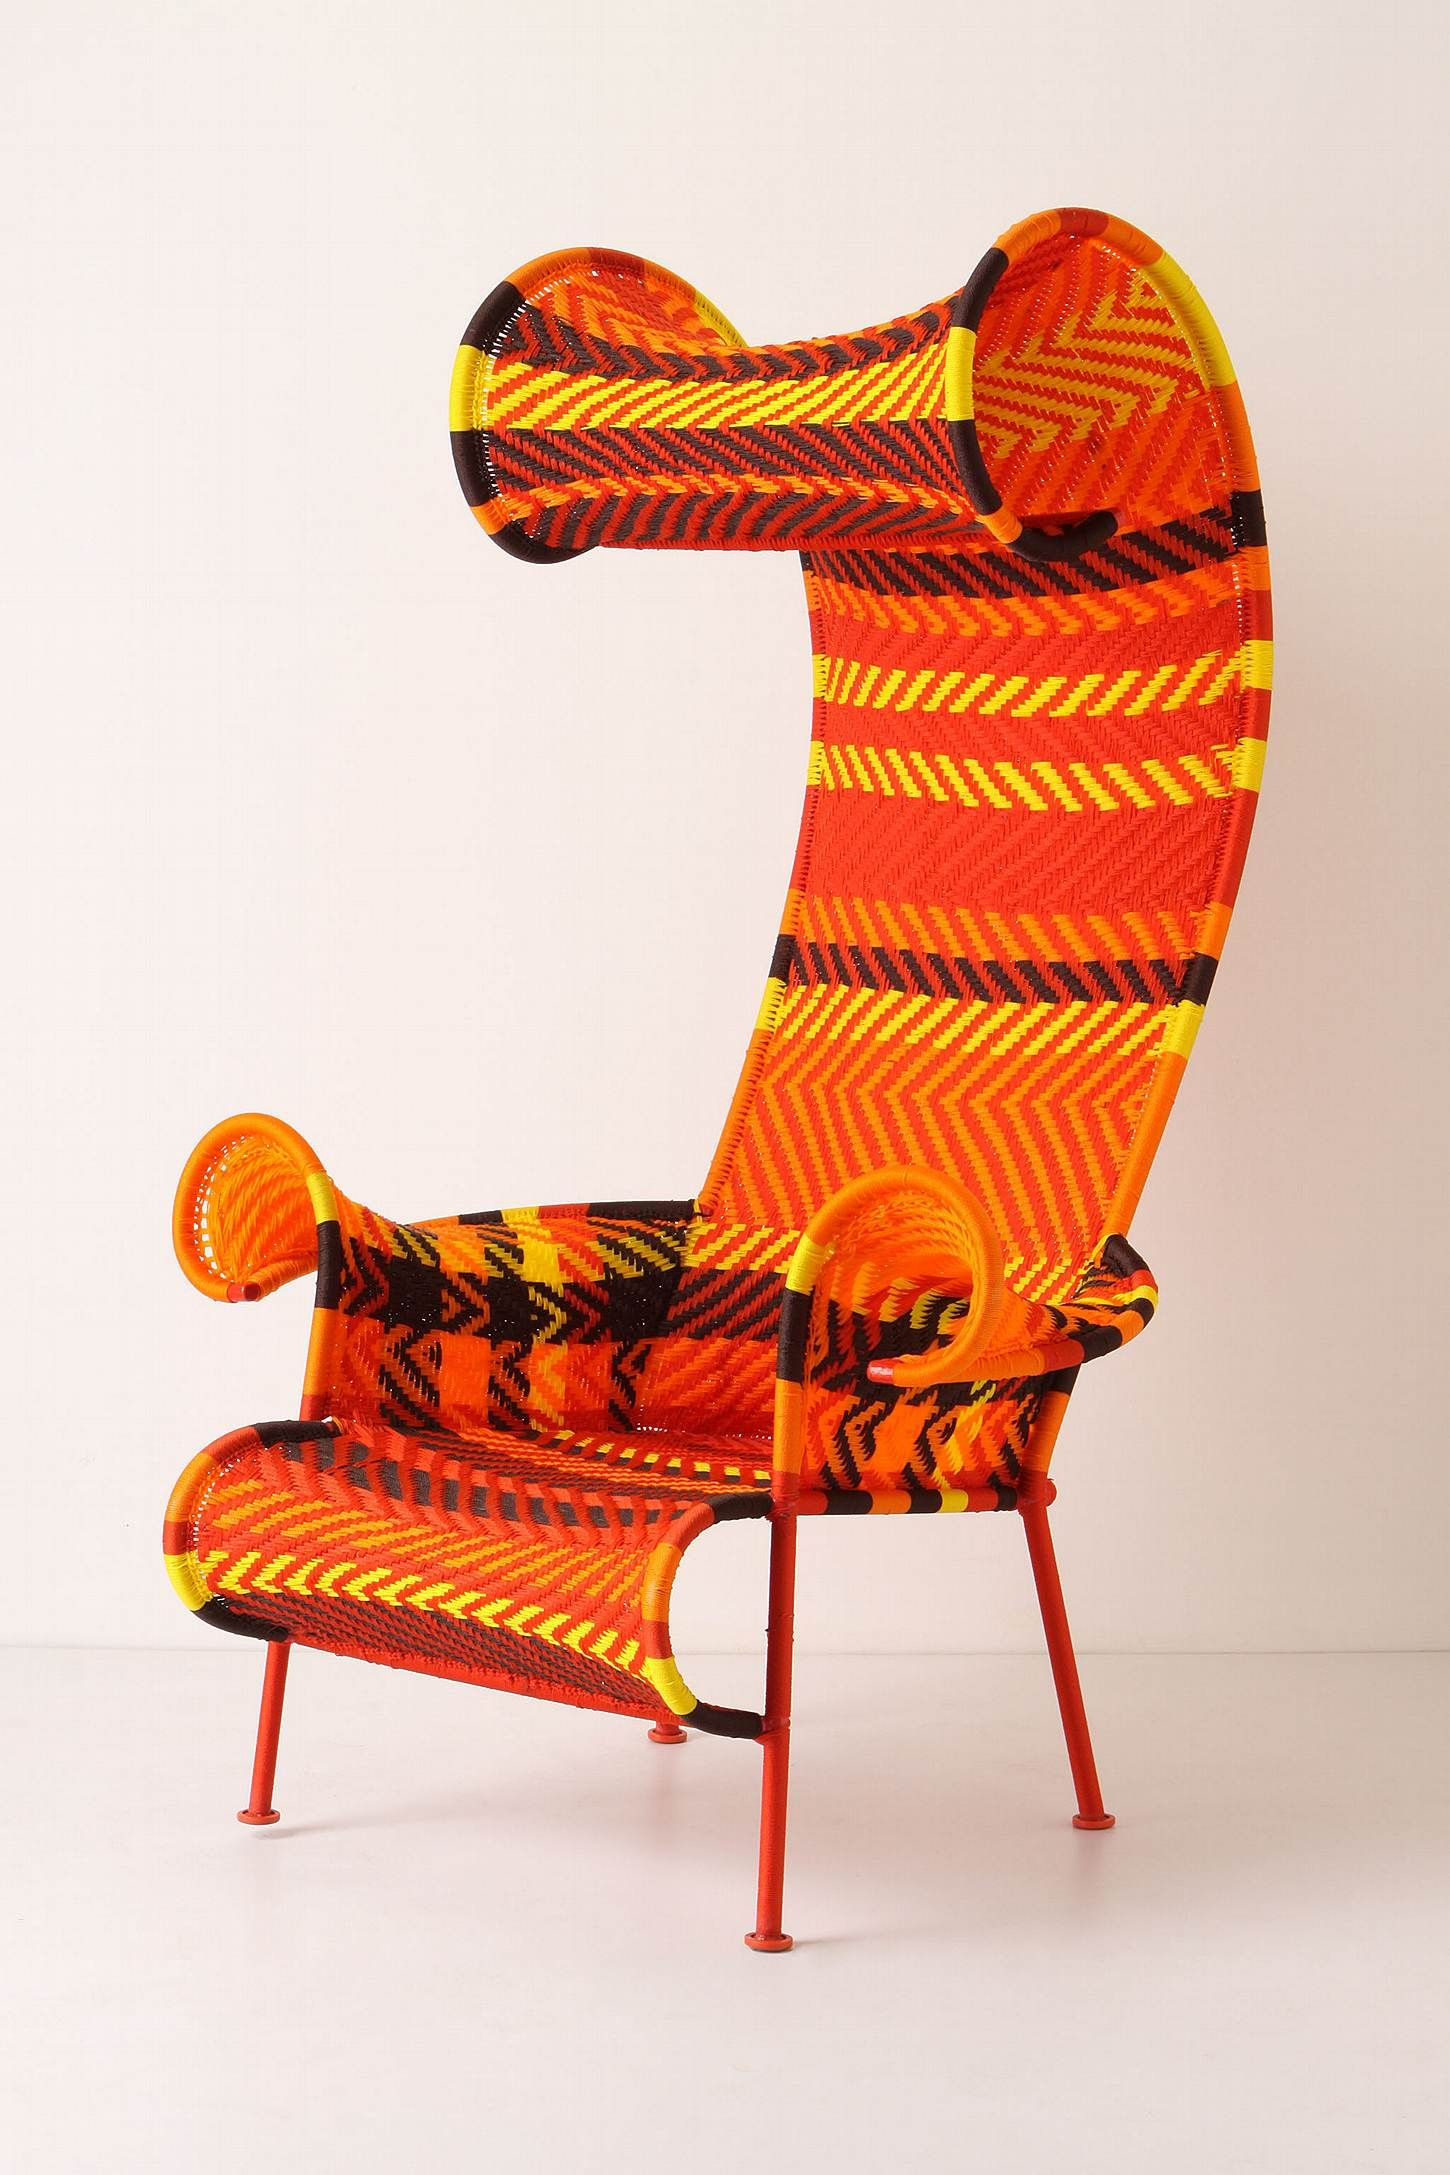 dr seuss chair lambright comfort chairs by tord boontje or quotchair from a book